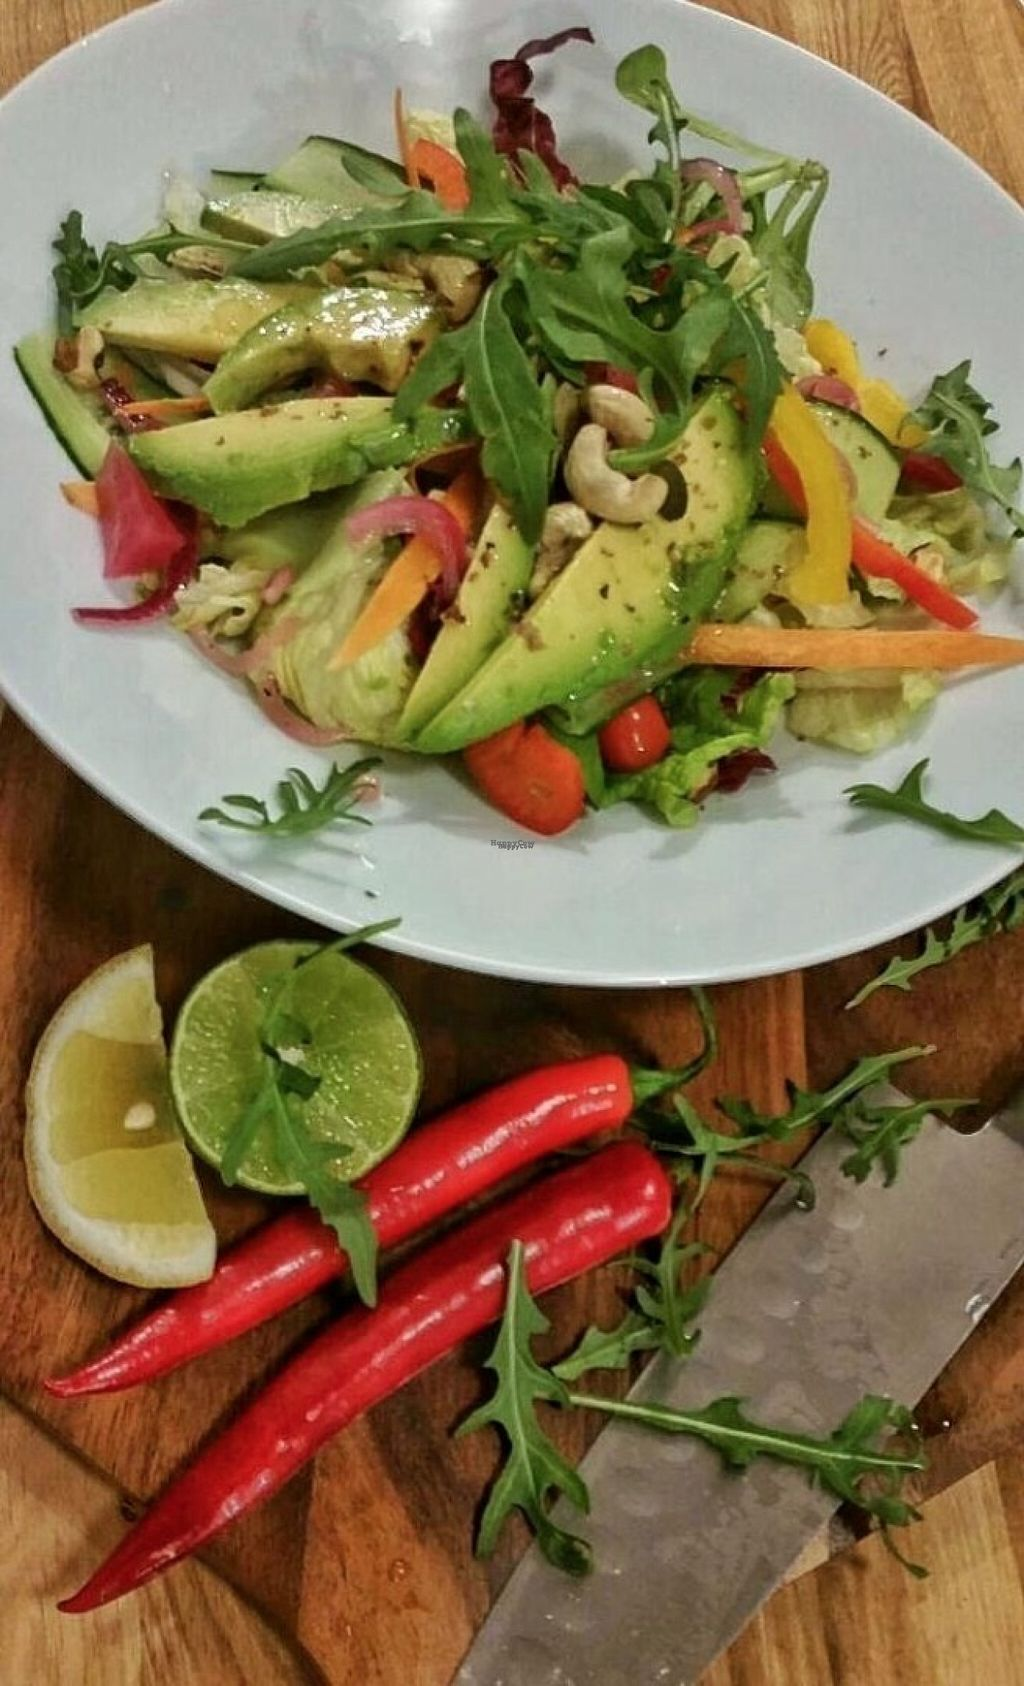 """Photo of Zeytuun  by <a href=""""/members/profile/community"""">community</a> <br/>avocado salad  <br/> August 5, 2016  - <a href='/contact/abuse/image/77024/165617'>Report</a>"""